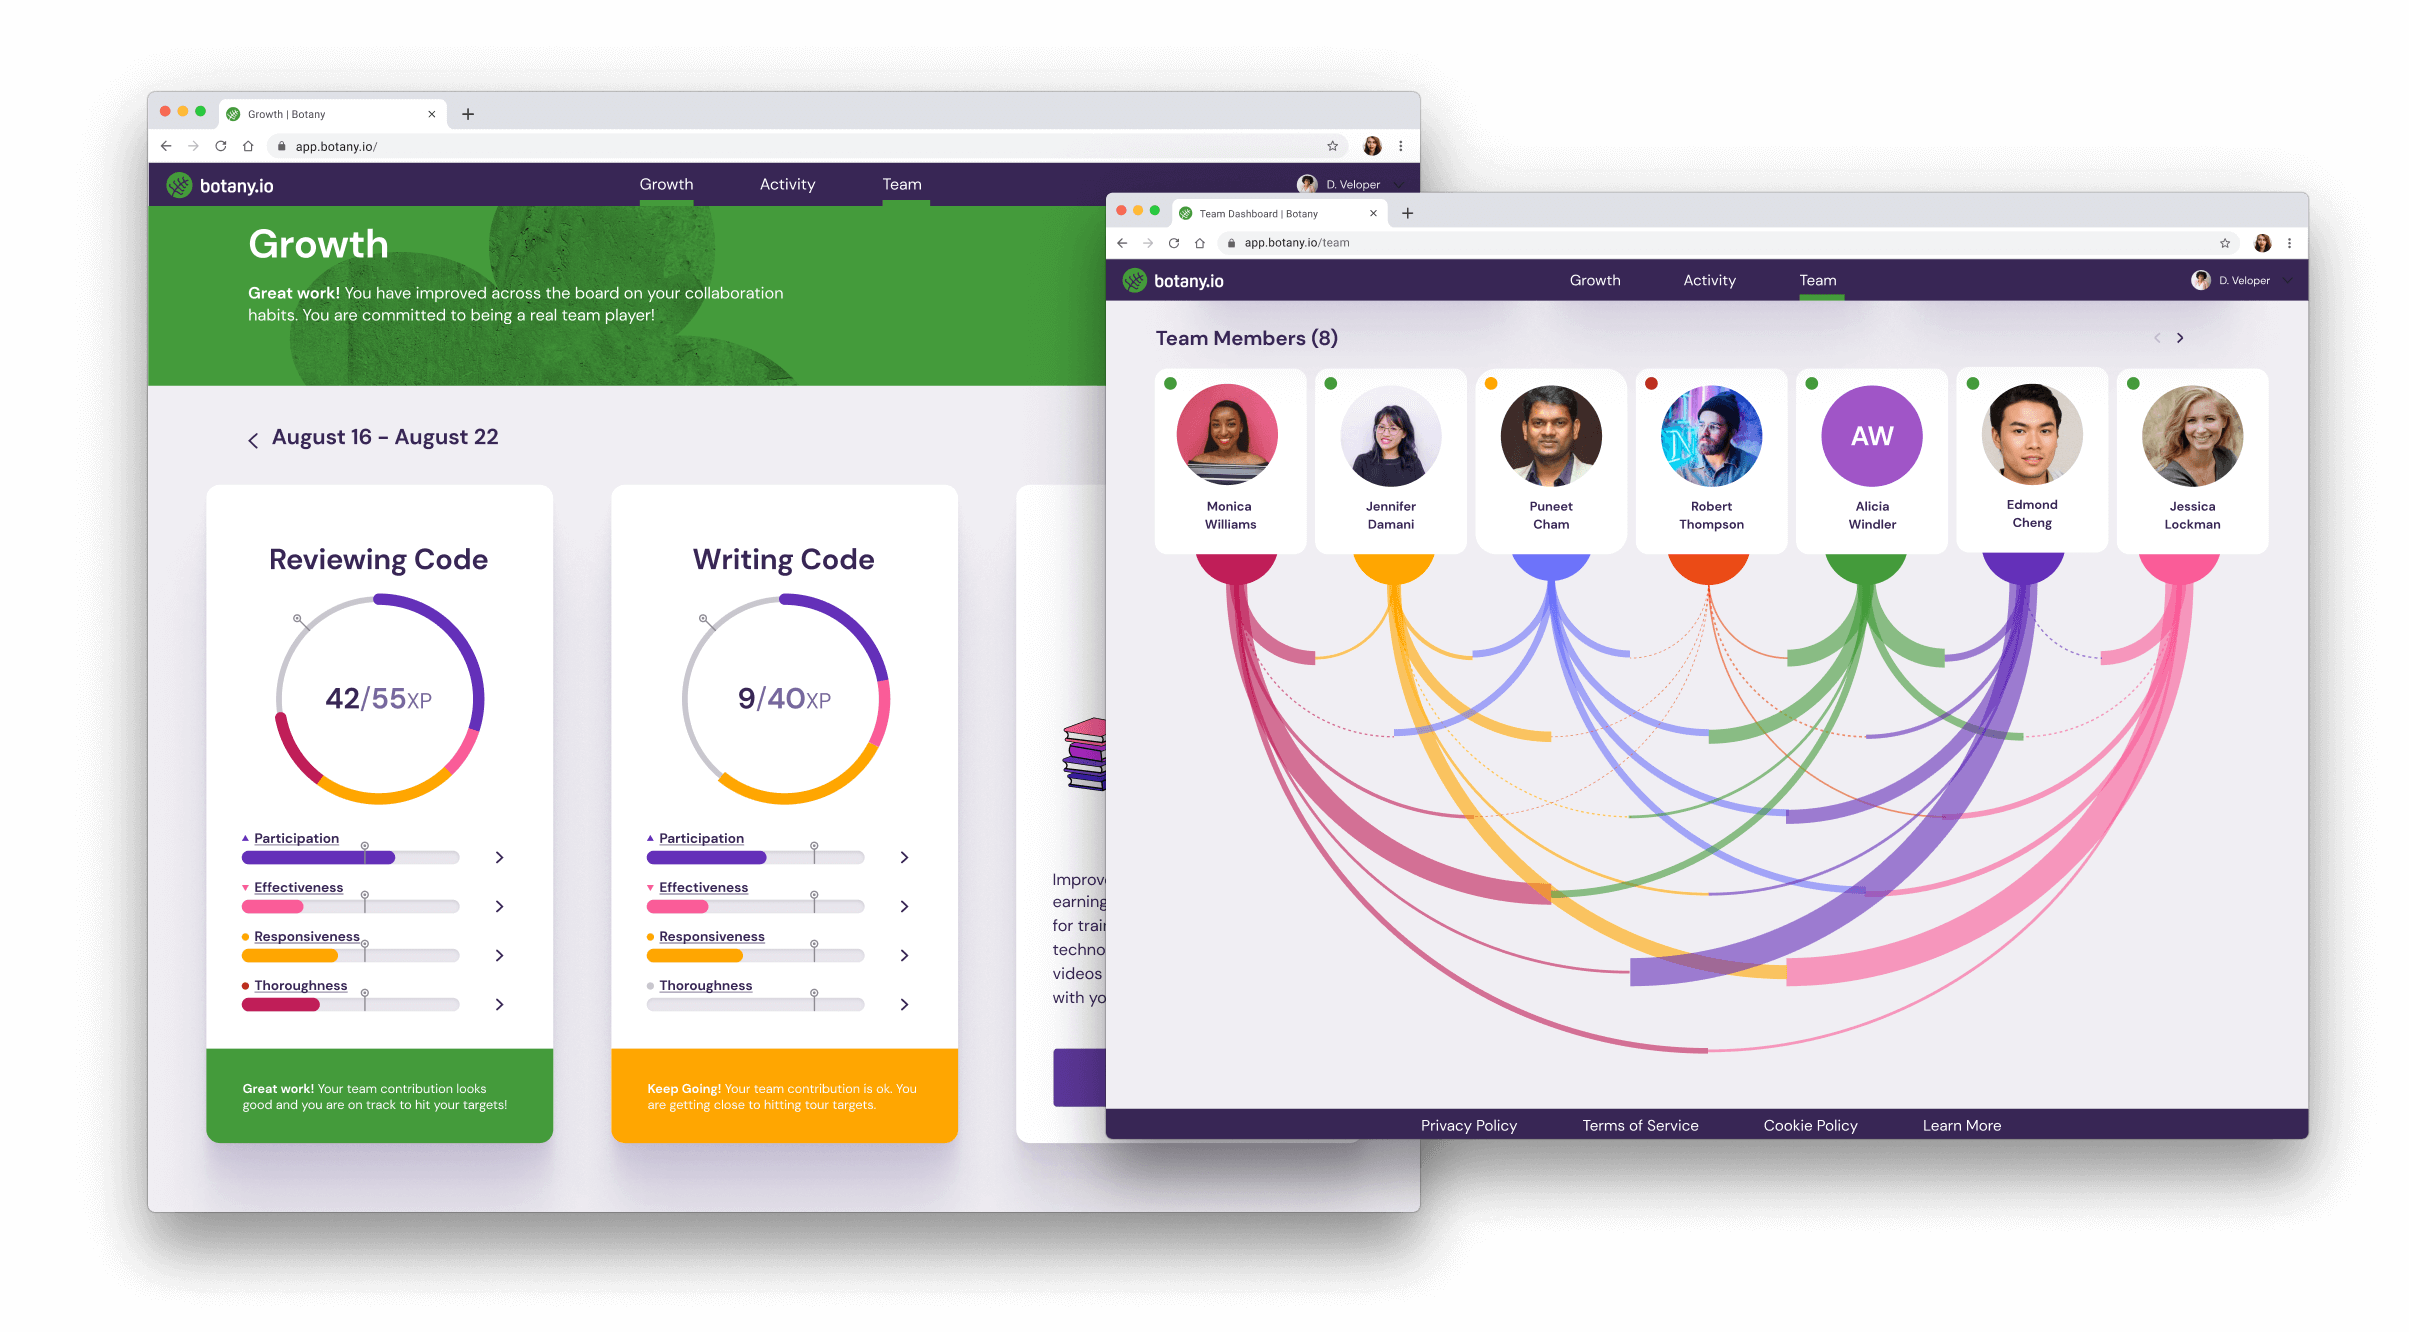 Team health and relationship dashboards